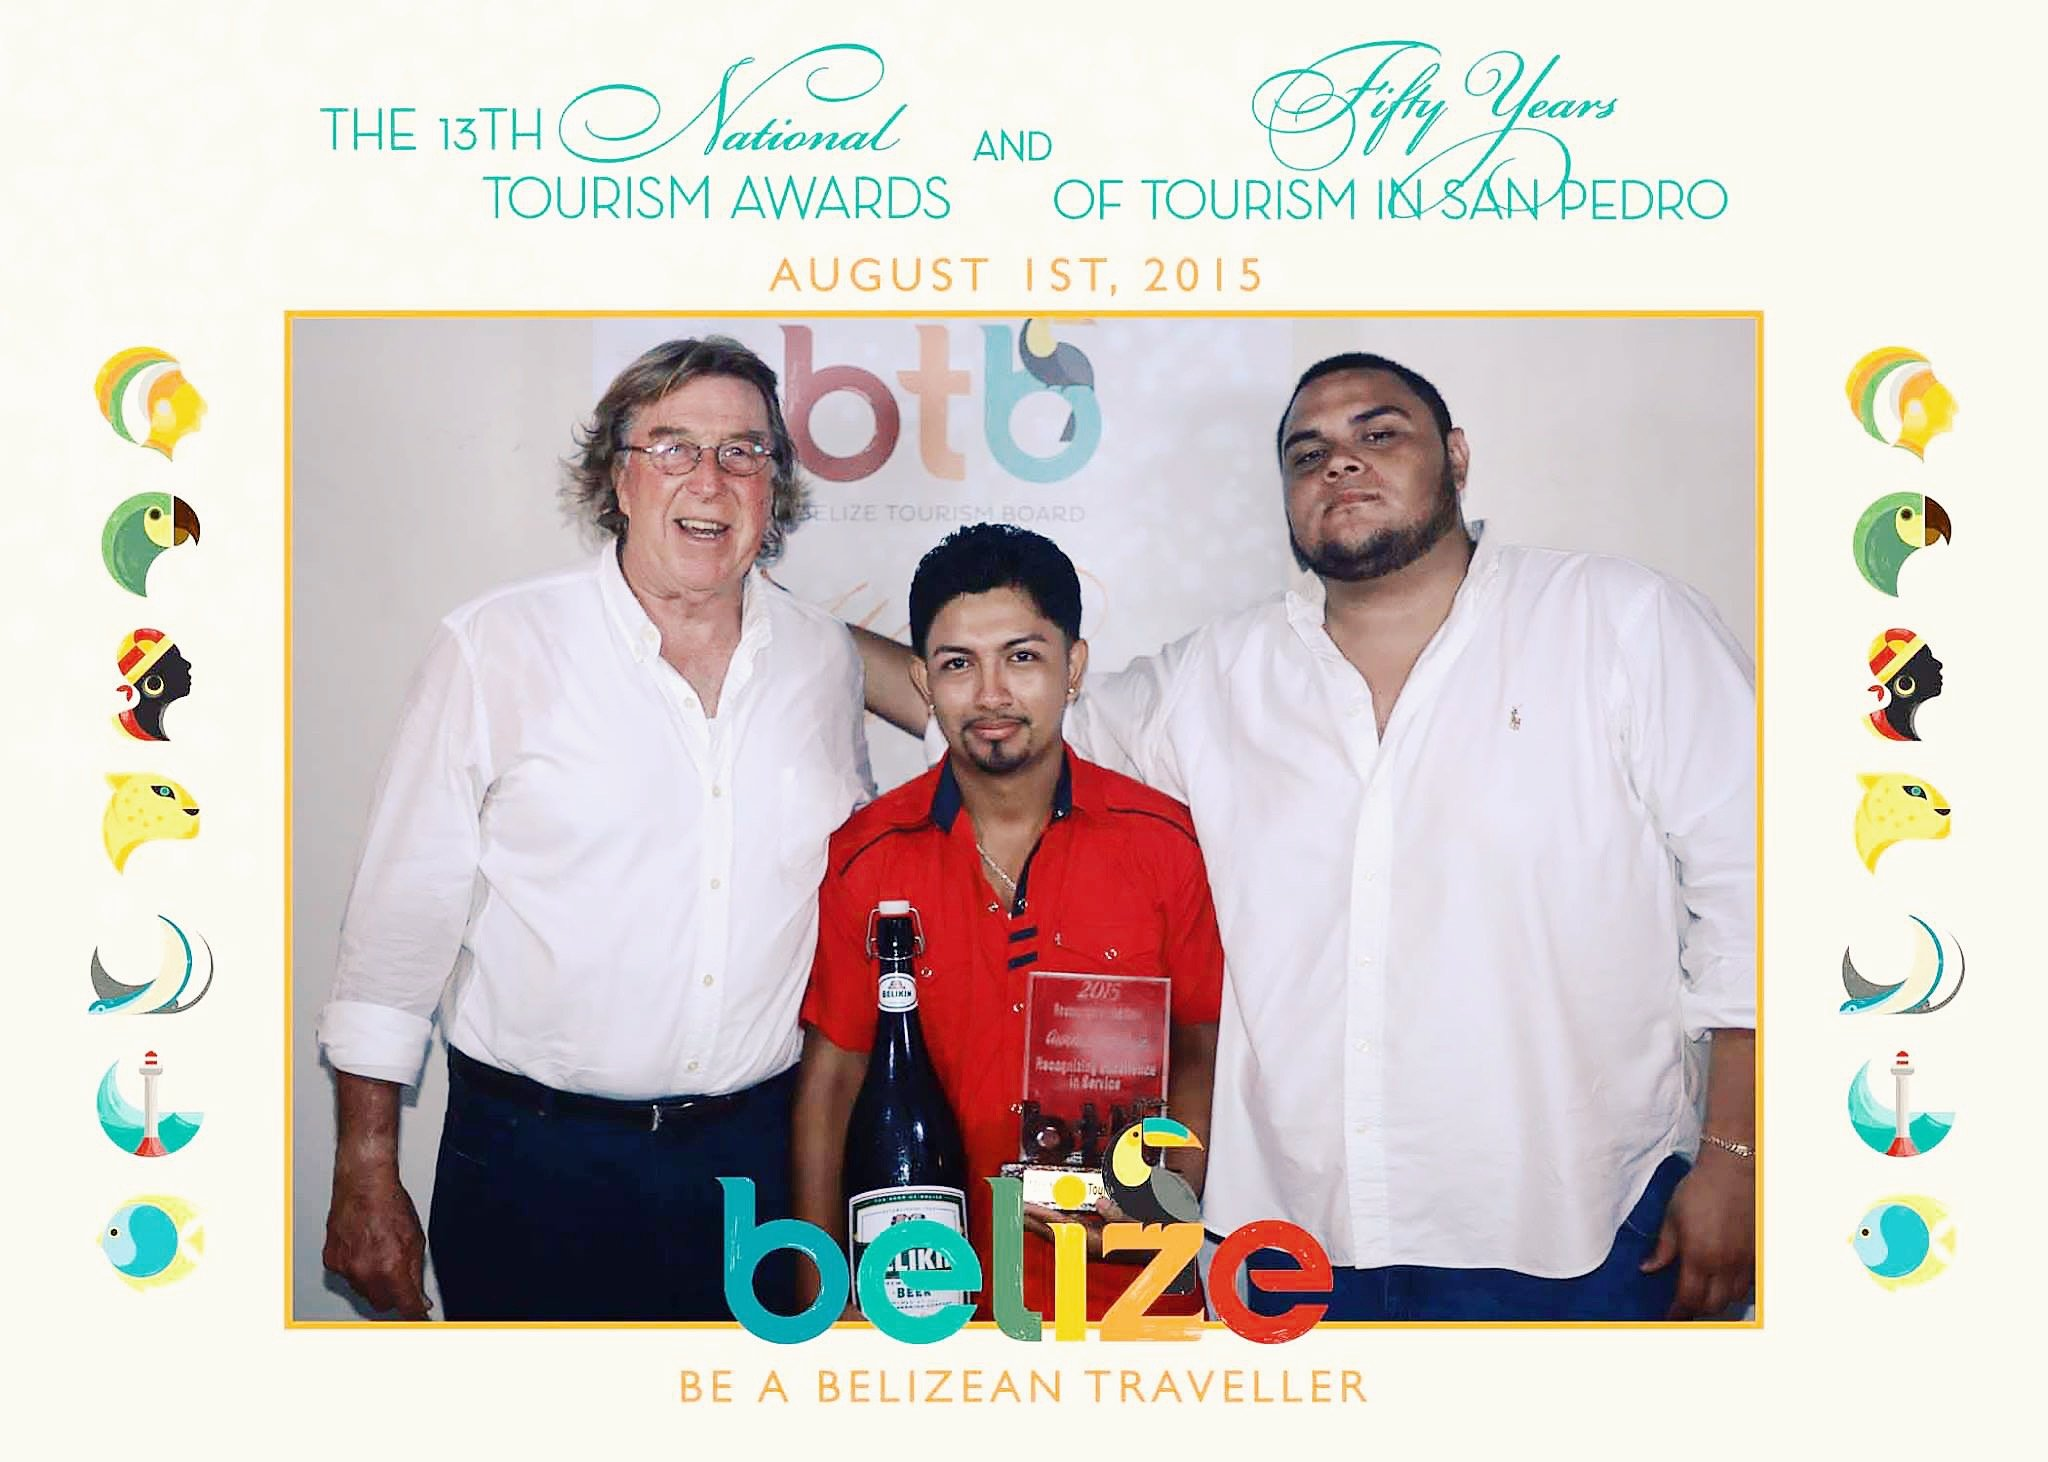 Guava Limb Cafe was awarded as Belize's Restaurant of the Year 2015 by BTB